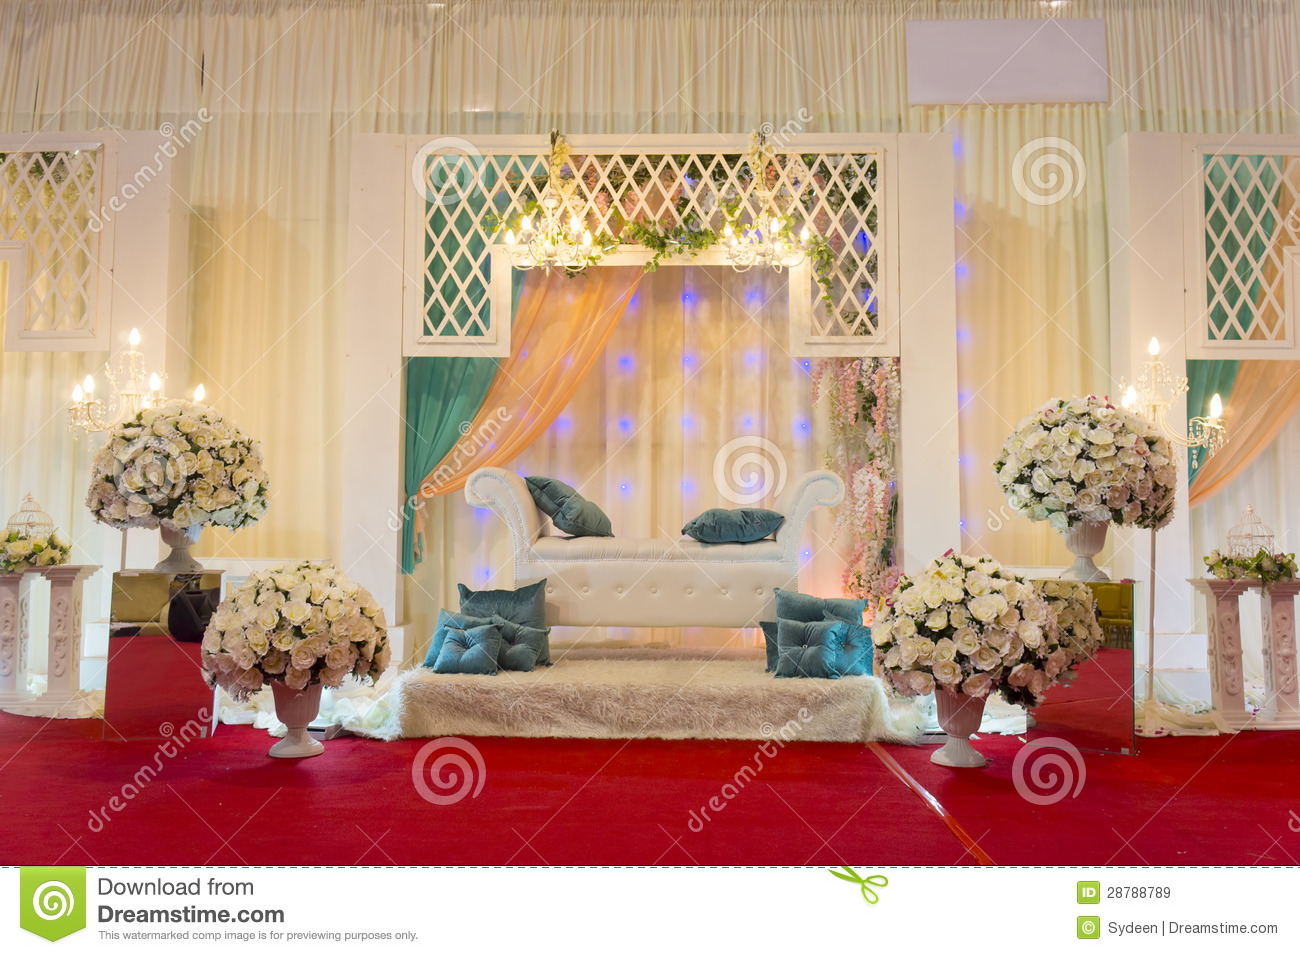 chair latest design folding stadium chairs modern wedding stage royalty free stock images - image: 28788789